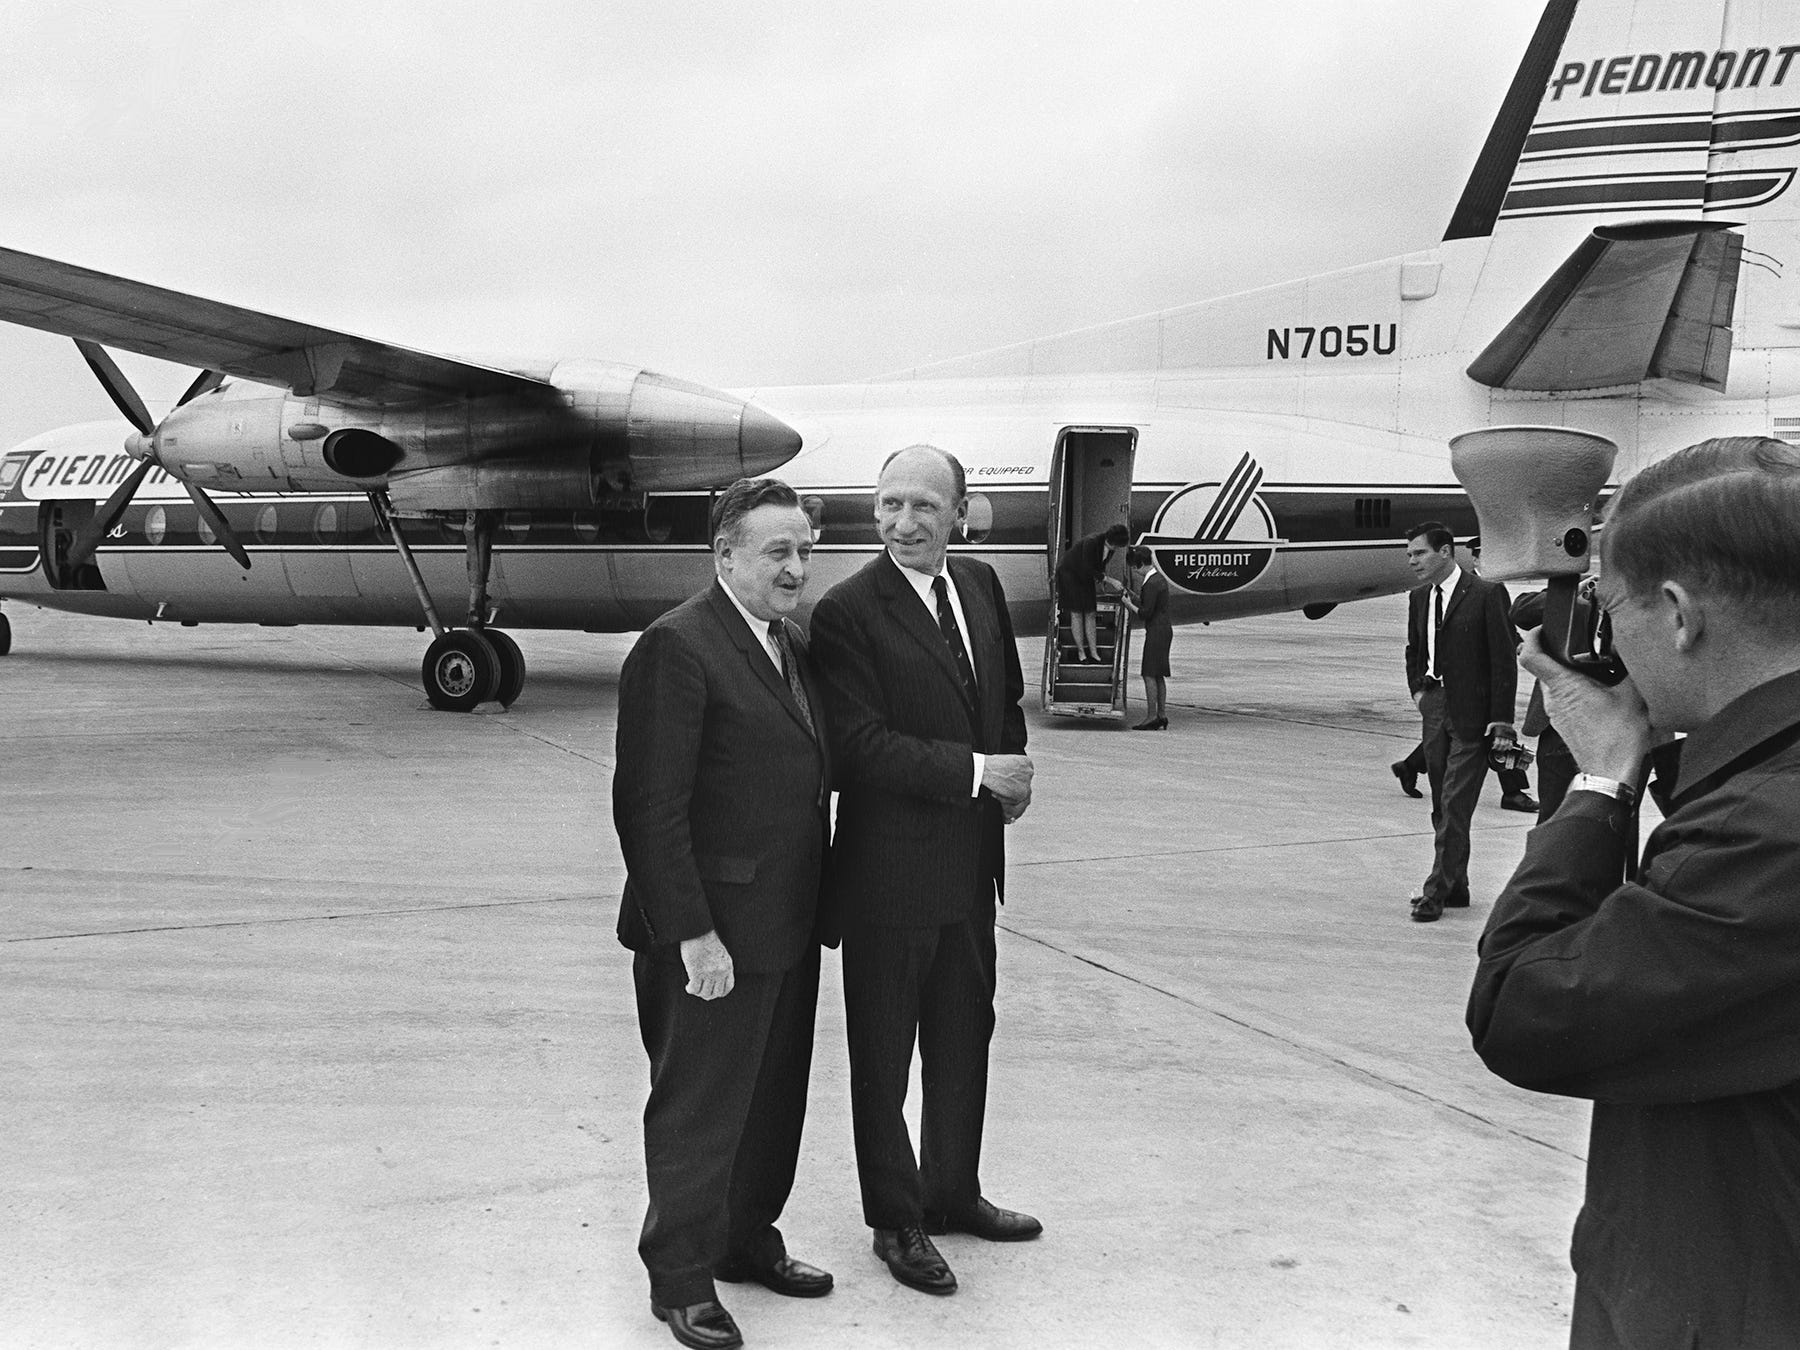 Mayor Beverly Briley, left, and Metro Airport Director Homer Anderson pose in front of the Piedmont plane Feb. 1, 1968, that just made its inaugural 10:10 a.m. flight from the Carolinas to Nashville before going on to Memphis. The flight is one of six new flights serving Nashville daily for Piedmont Airlines.